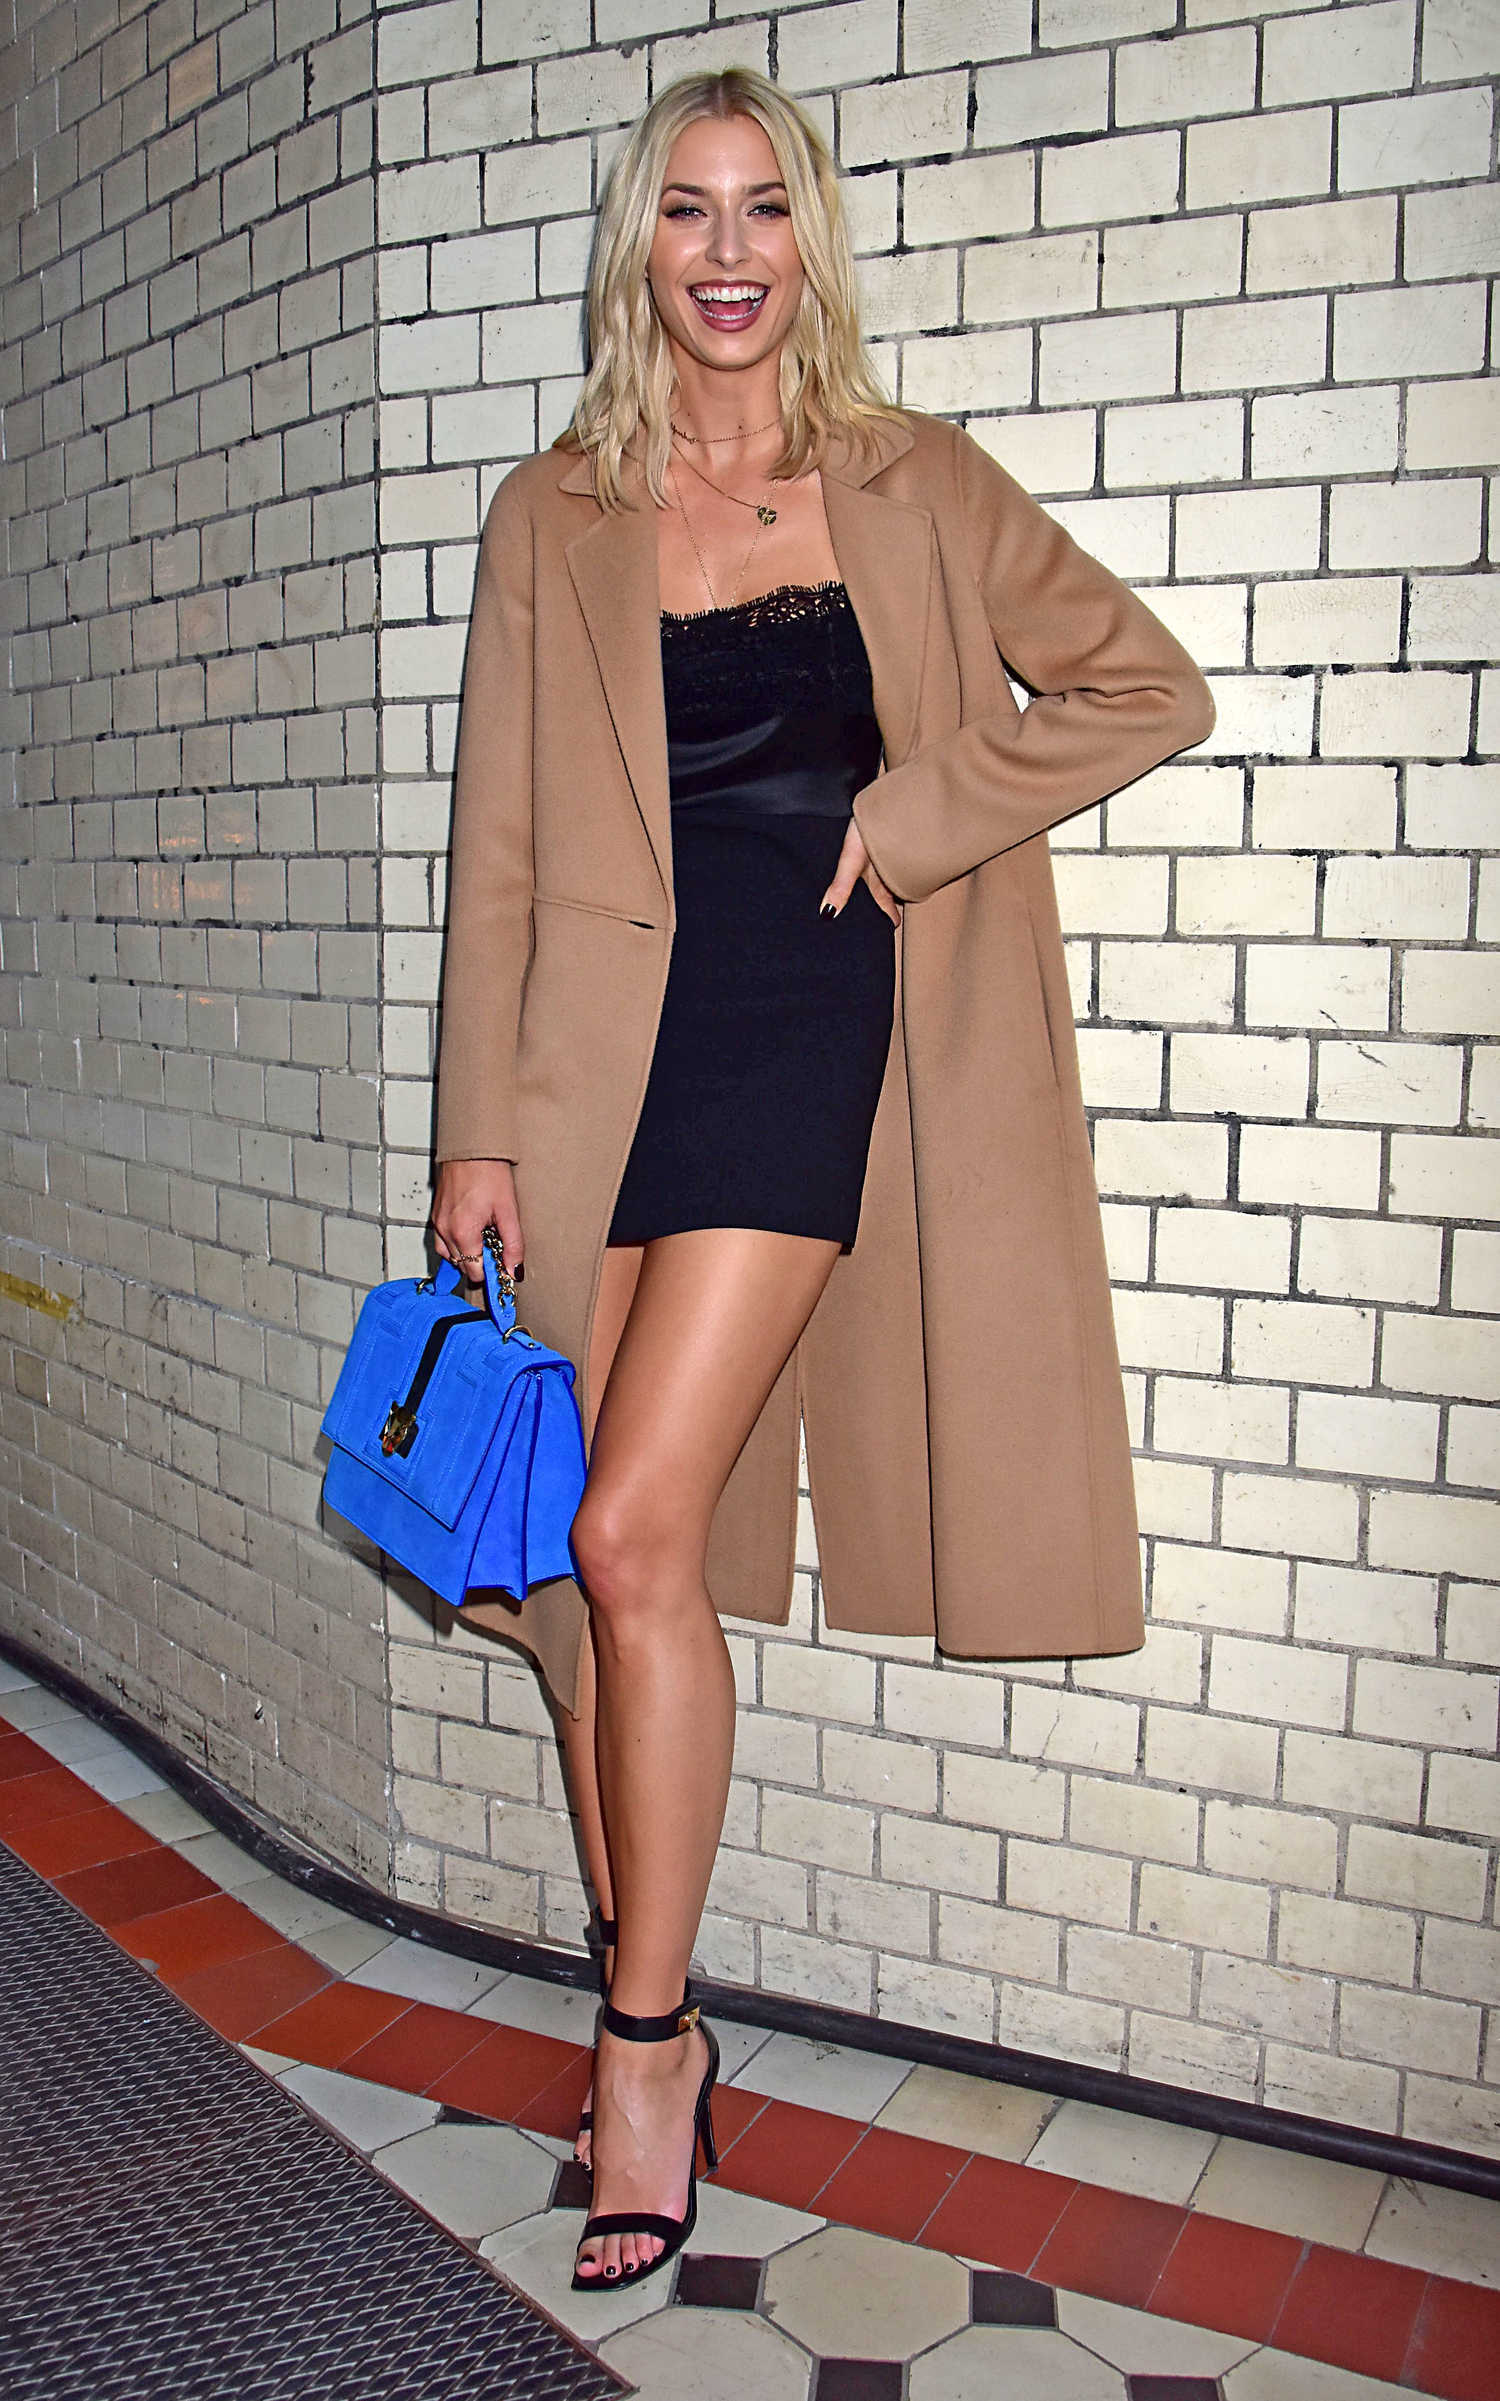 Lena Gercke During the Mercedes Benz Fashion Week in